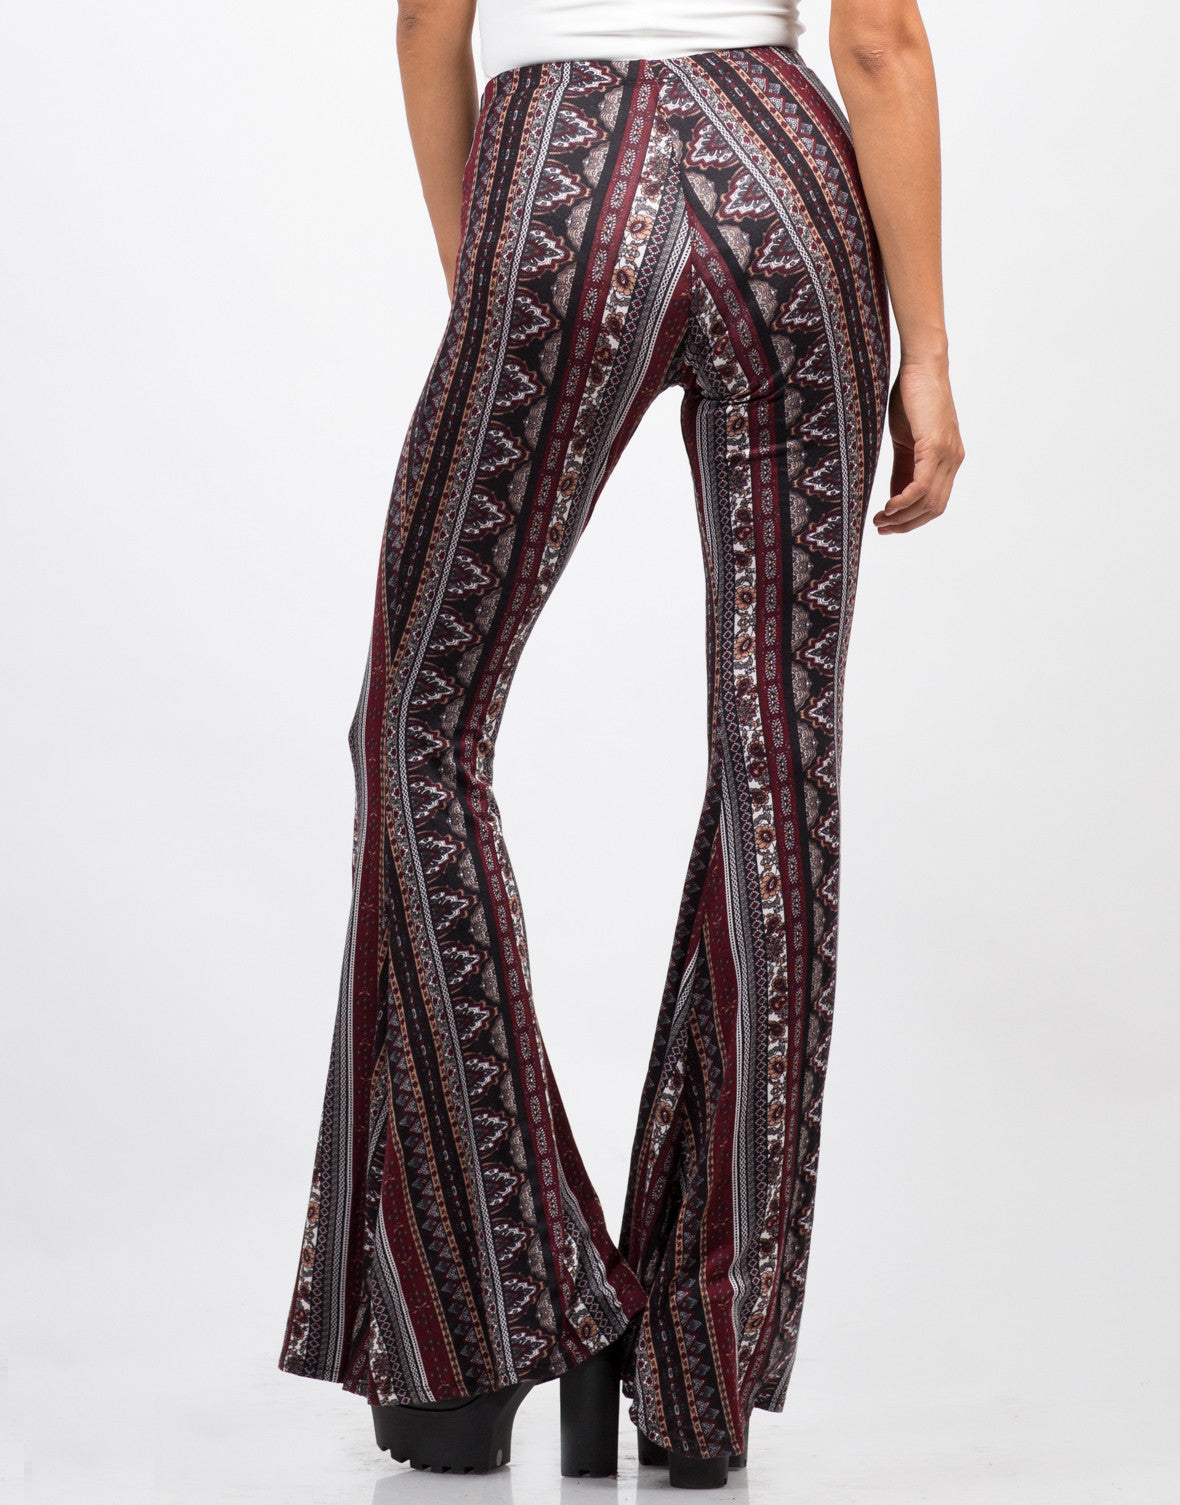 Back View of Printed Super Flare Pants